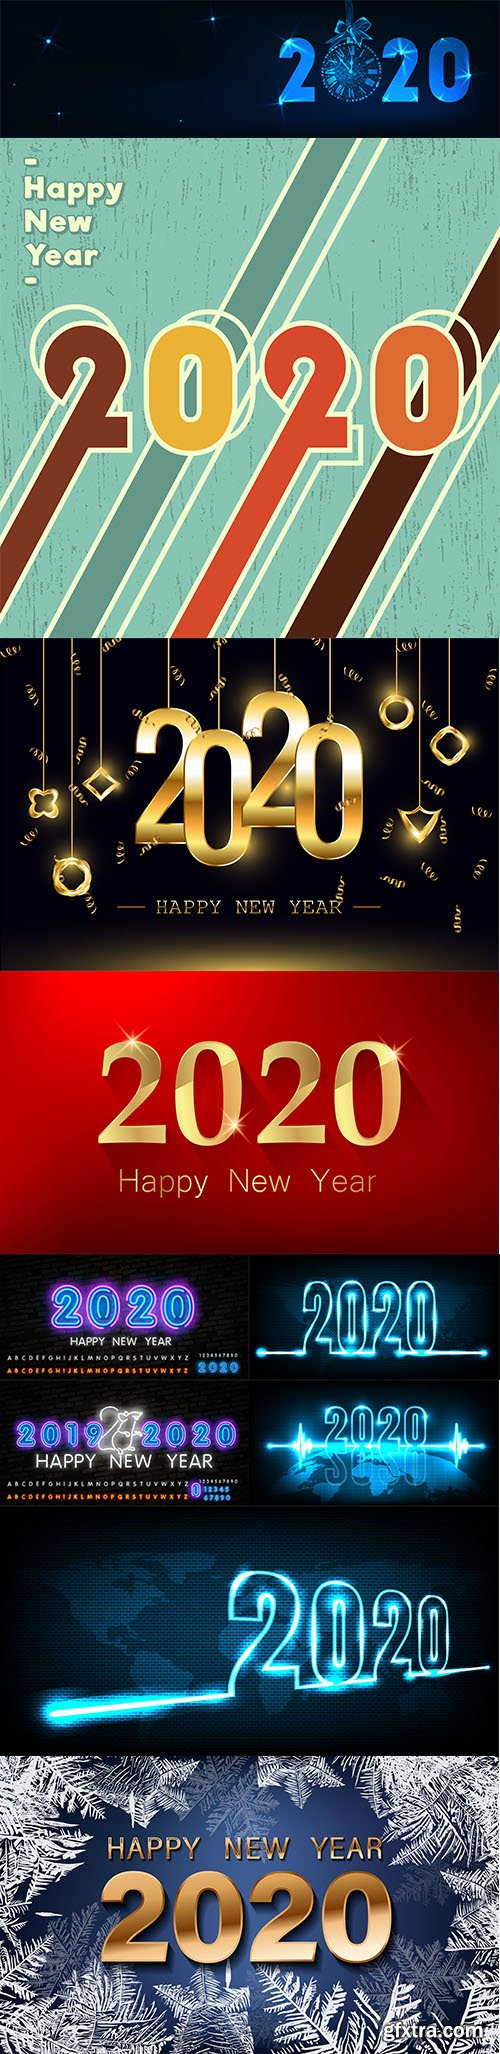 Merry Christmas and Happy New Year 2020 Illustrations Set 2